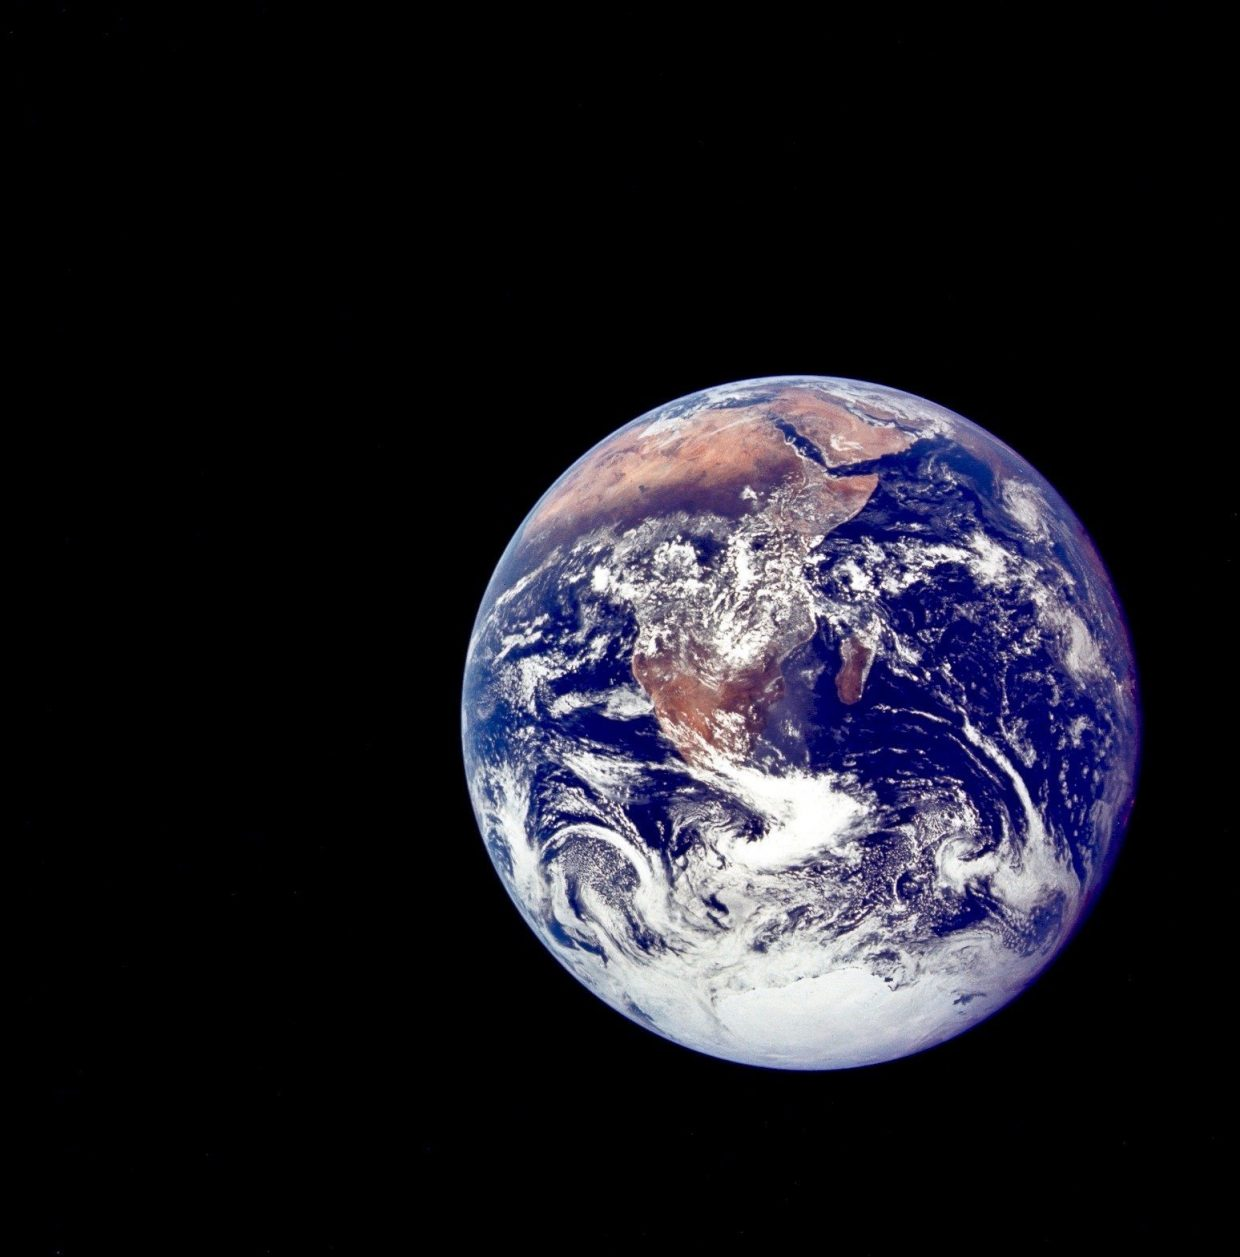 Earth Day Without Us: Human conceit, resilience, and finding our place in the Anthropocene